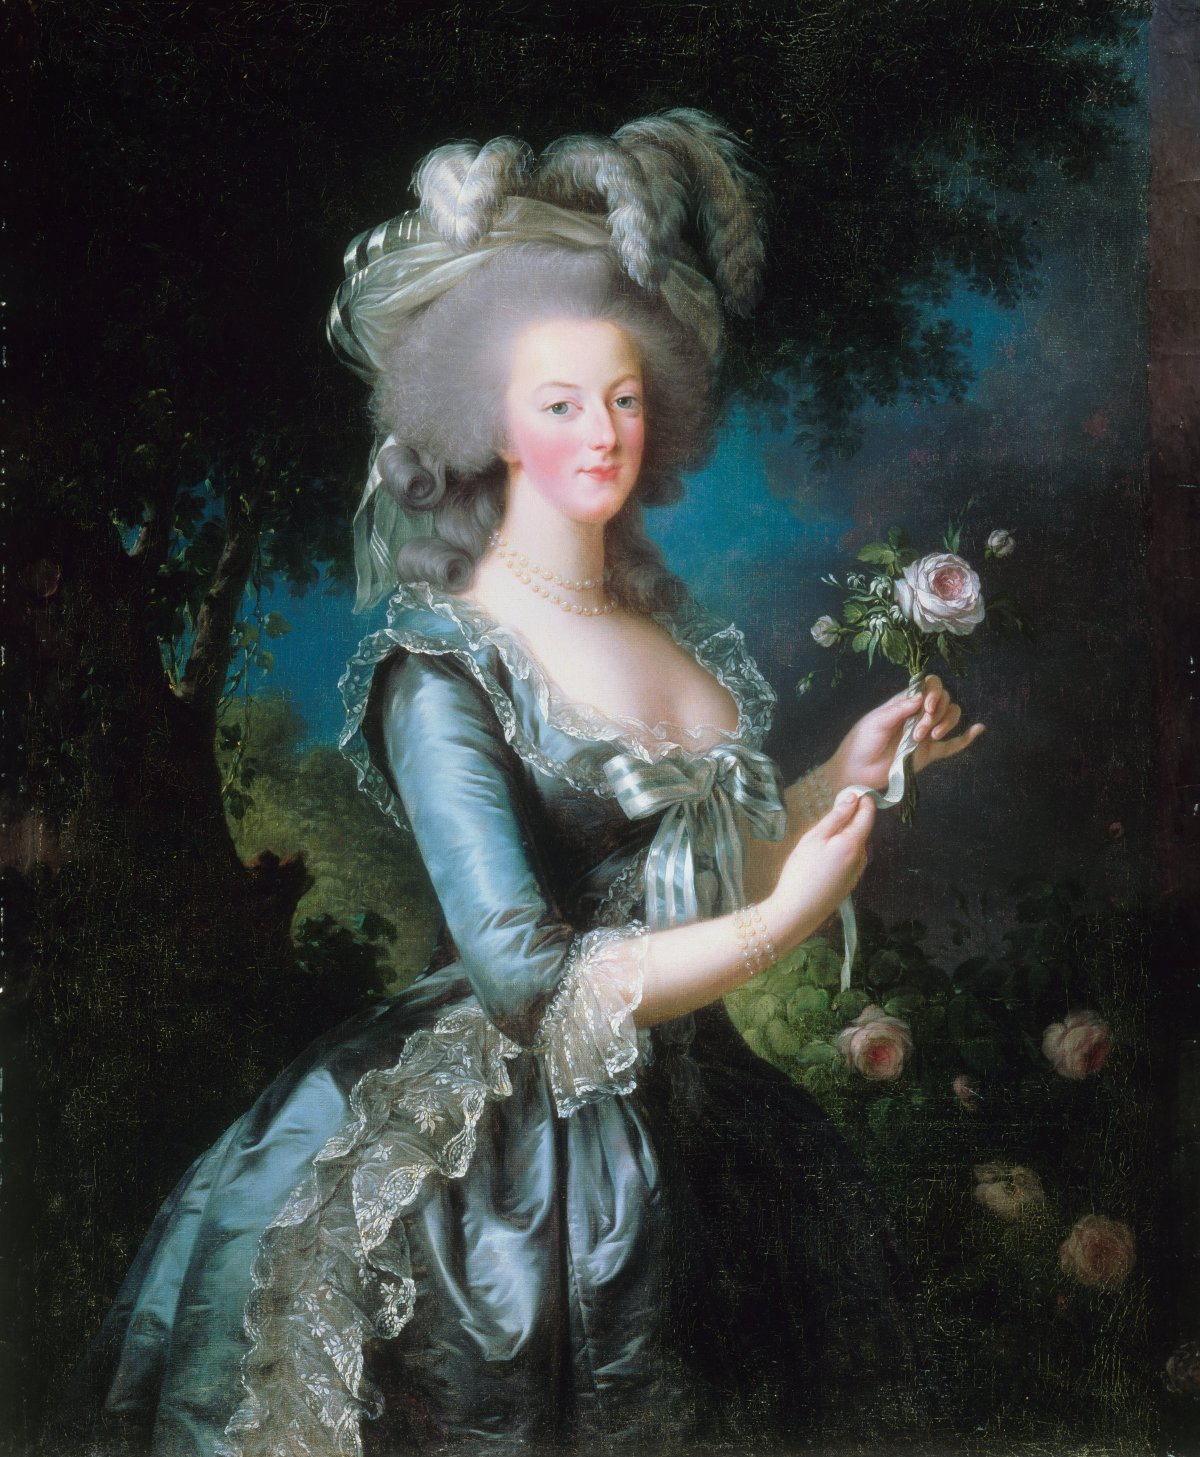 Marie-Antoinette with the Rose by Elisabeth Louise Vigée-LeBrun, ca. 1783